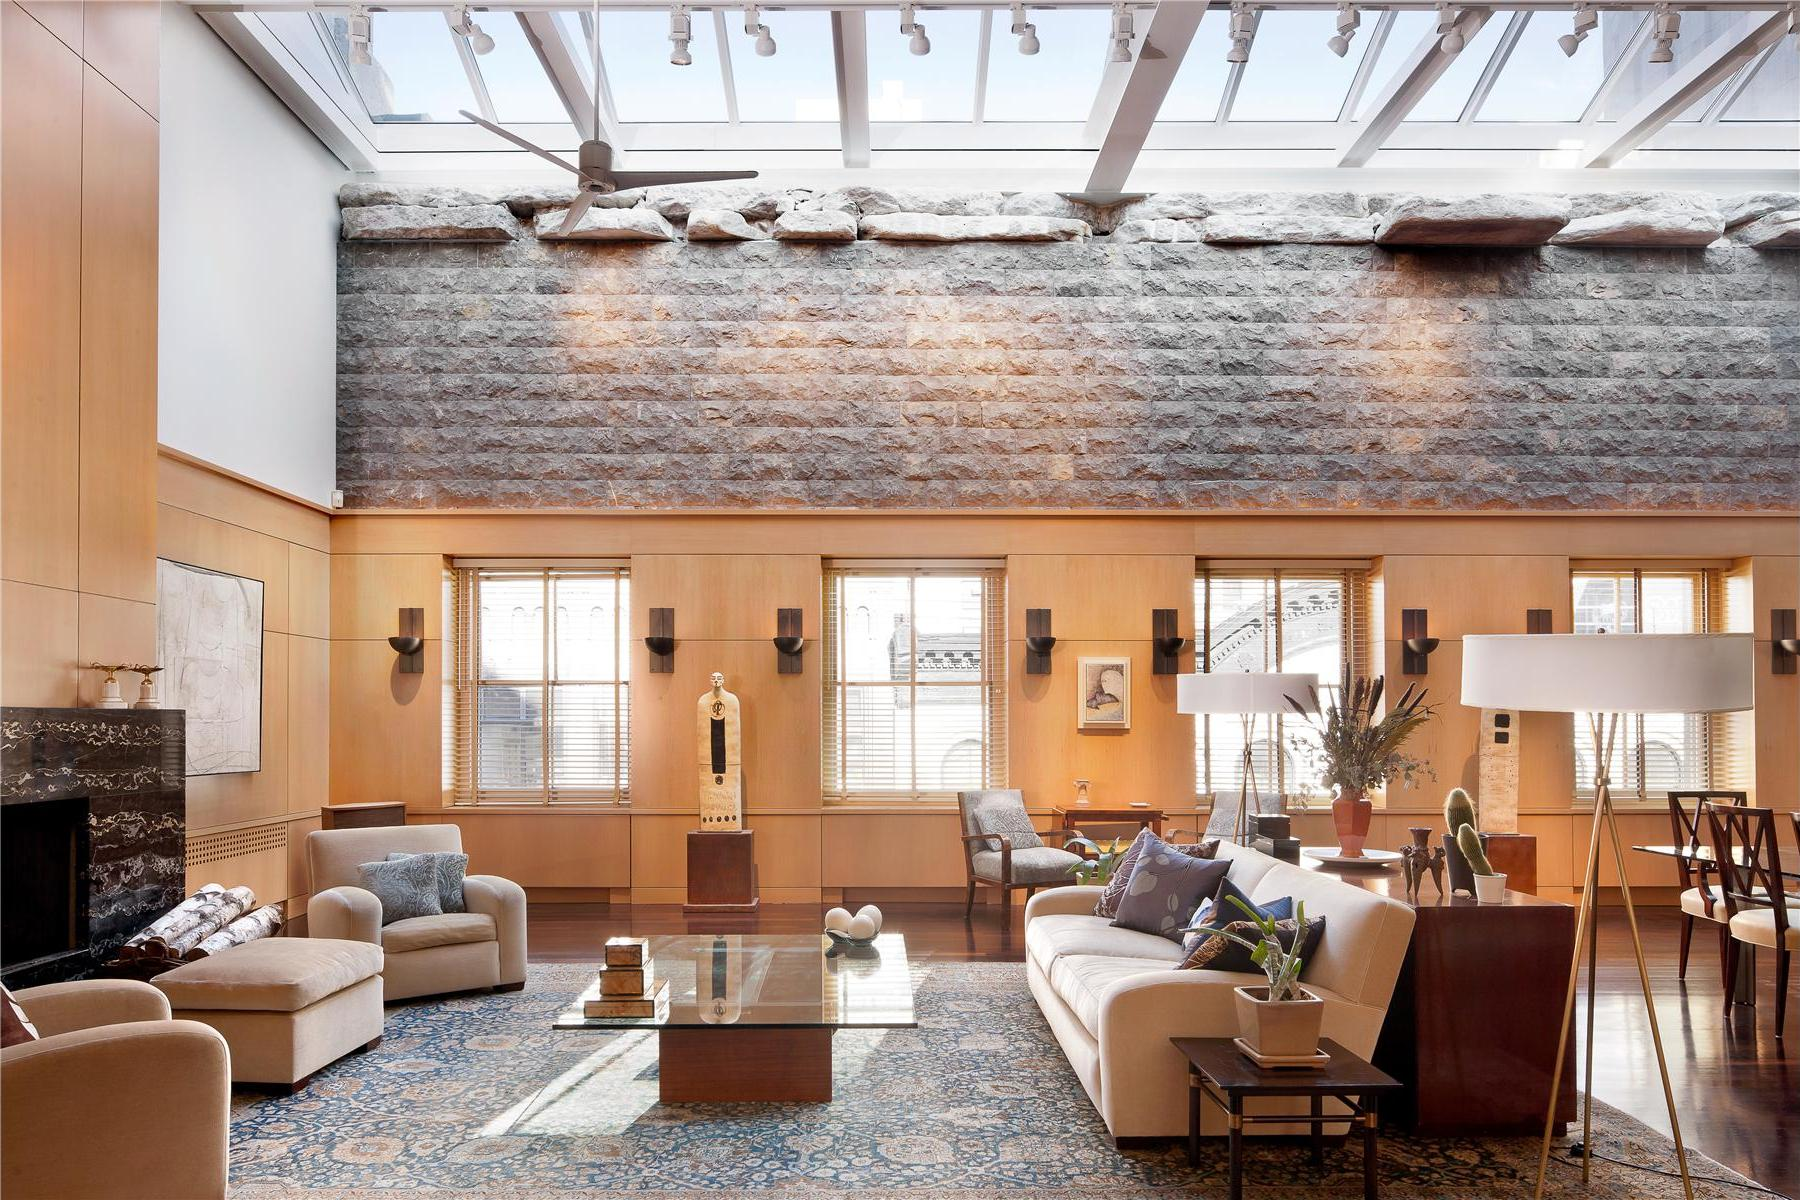 Superb Luxury Penthouse In Tribeca, New York